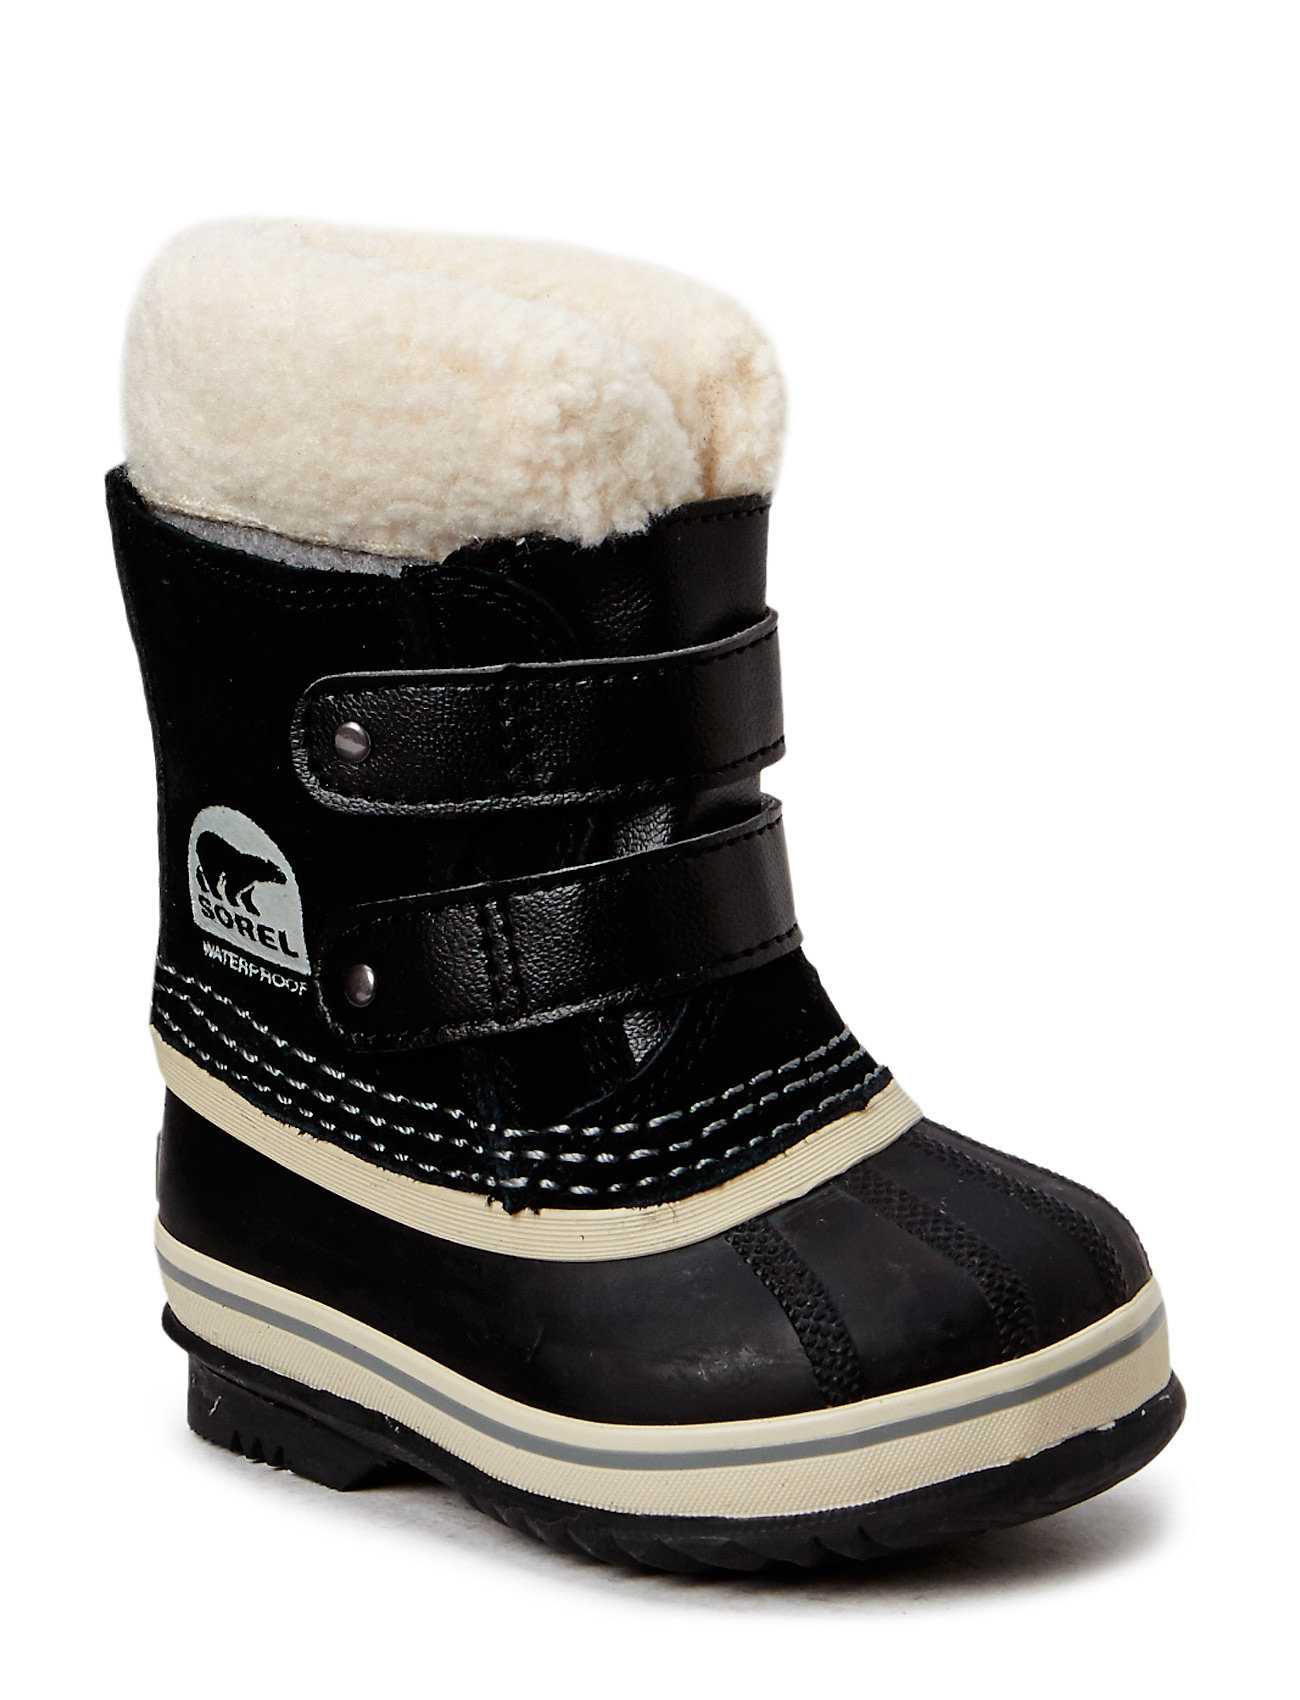 Sorel Toddler's 1964 Pac Strap